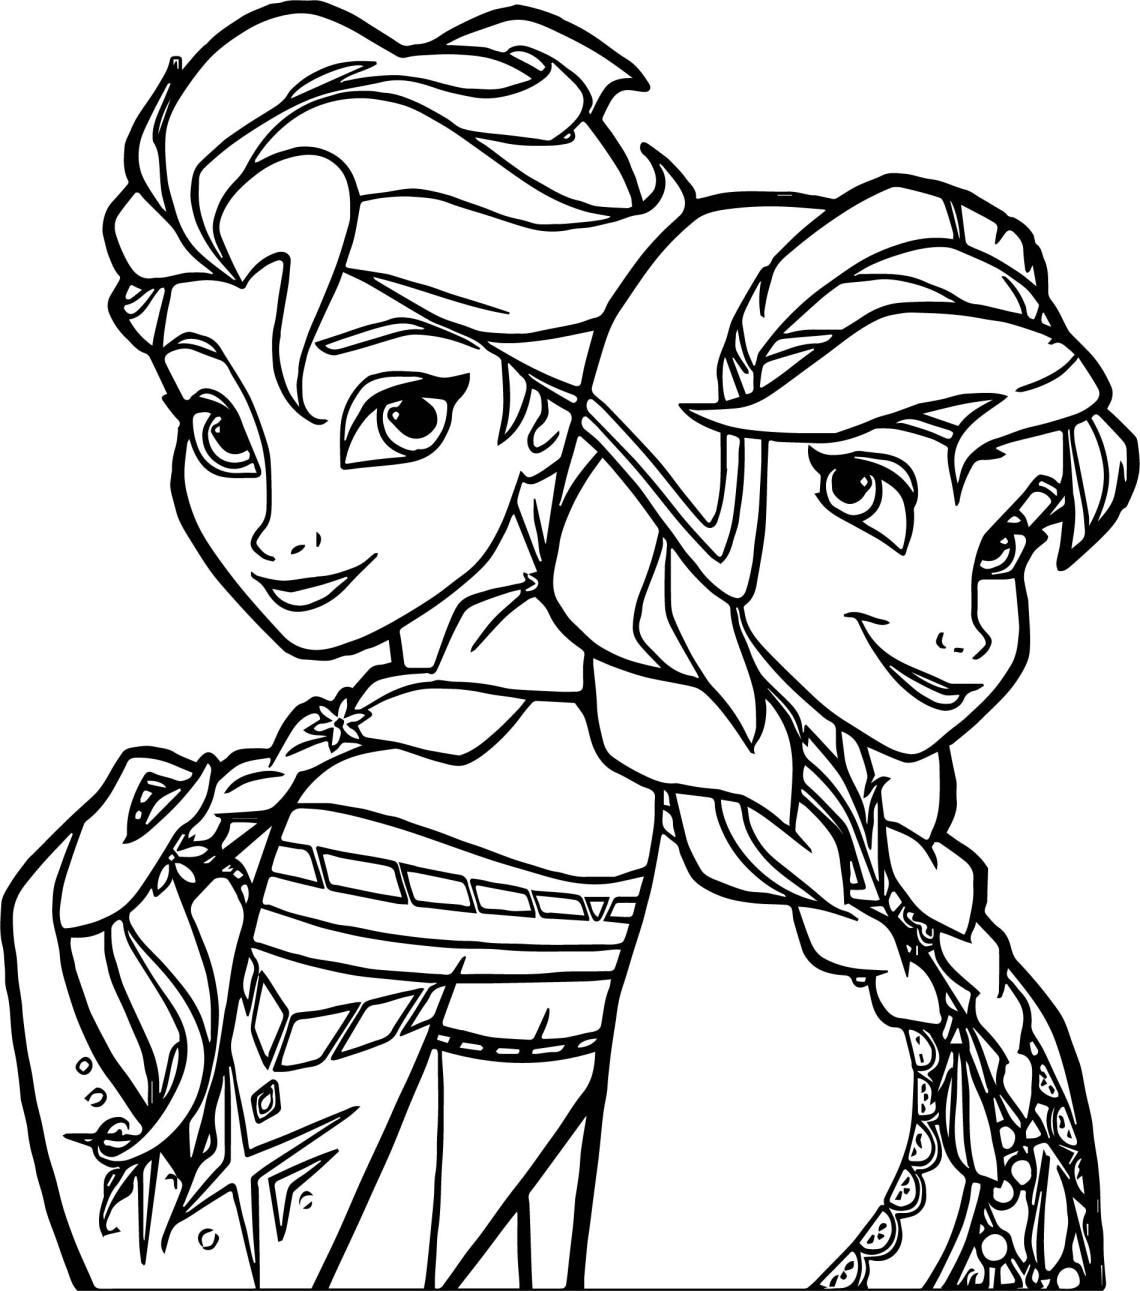 Frozen Sisters Coloring Page | Wecoloringpage.com | disney frozen coloring pages free printable